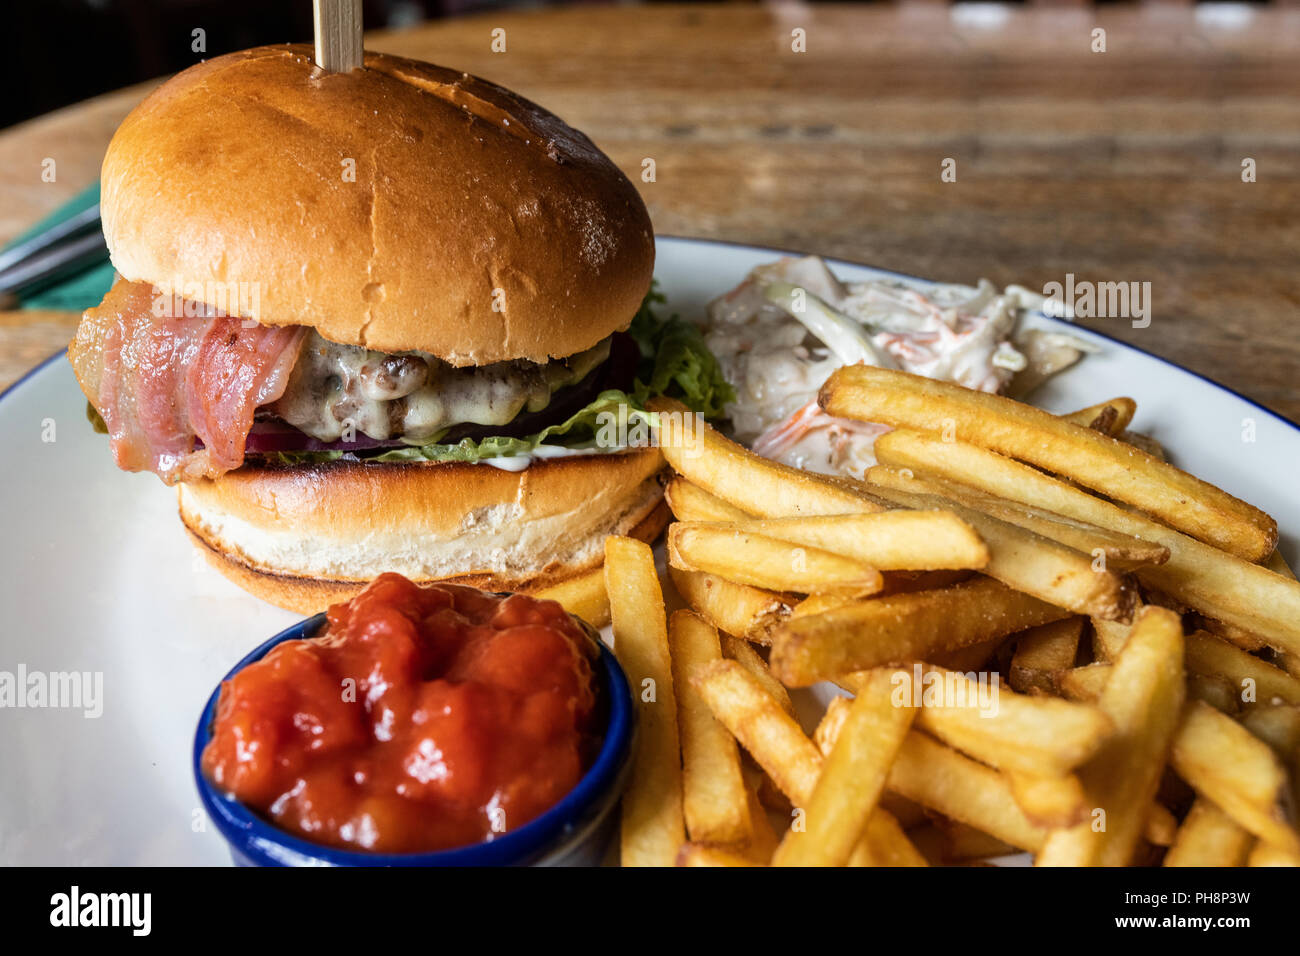 Cheese burger - Stock Image